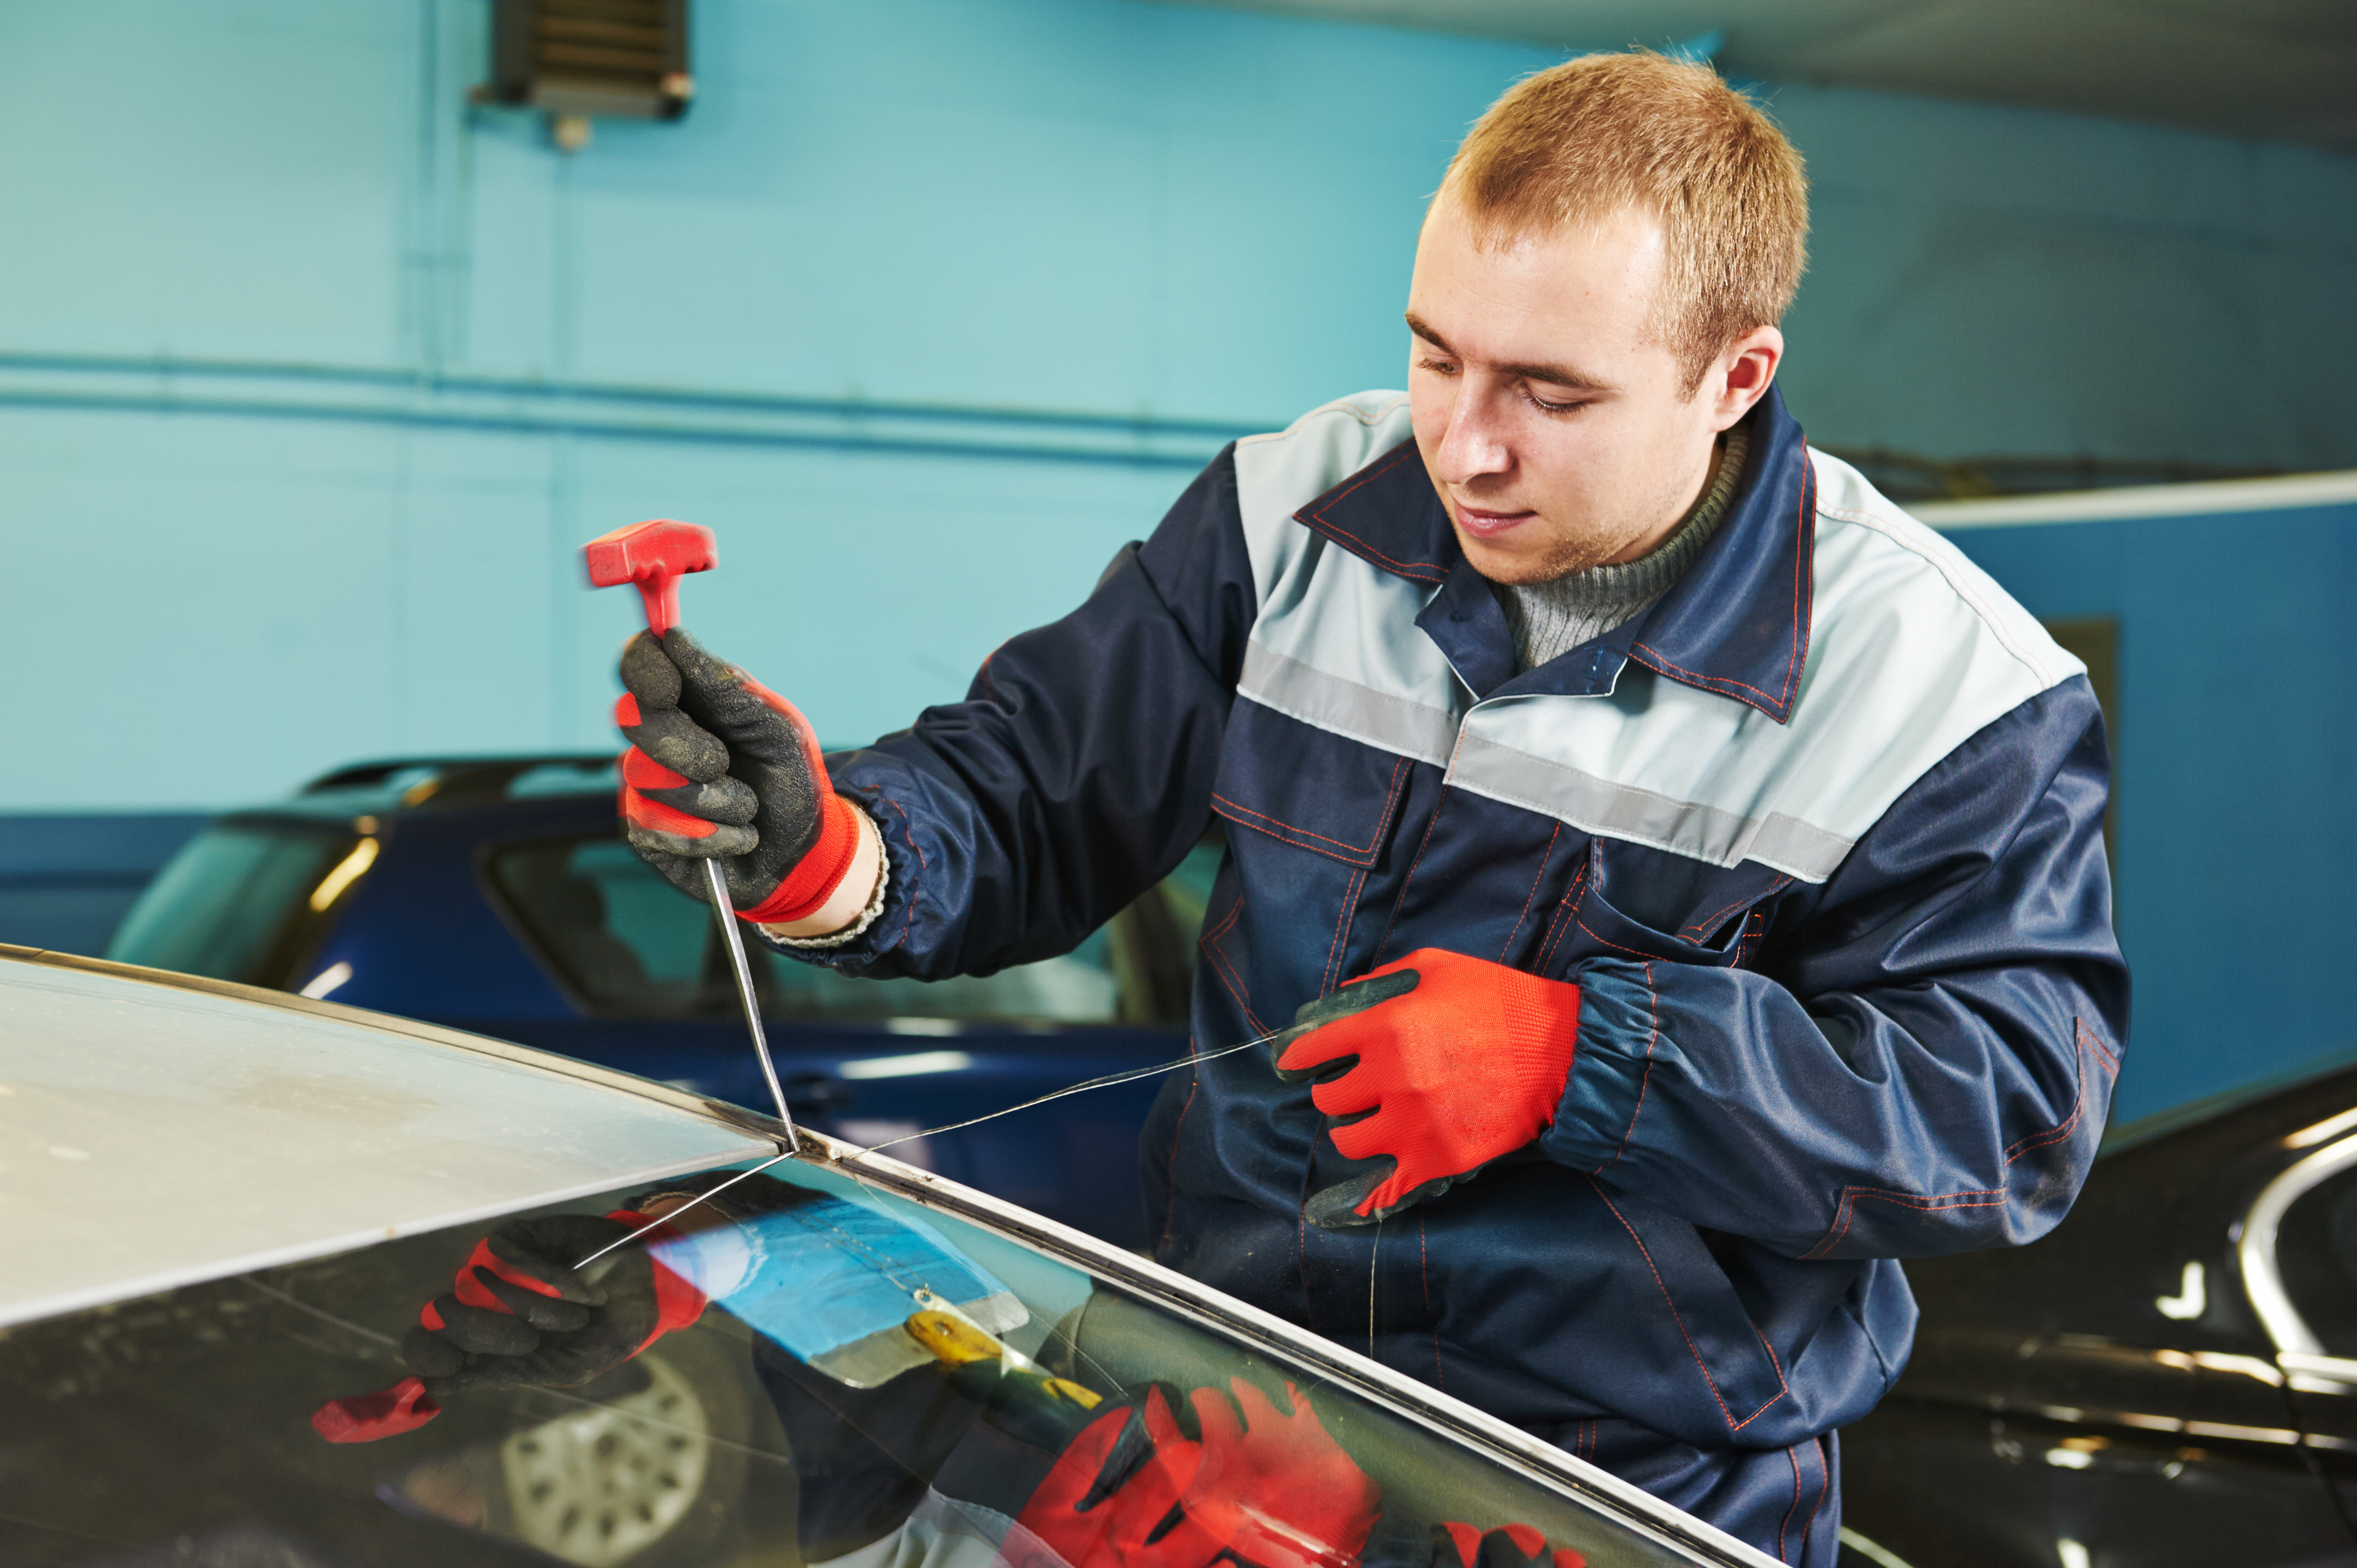 Top 10 Most Common Vehicle Repairs